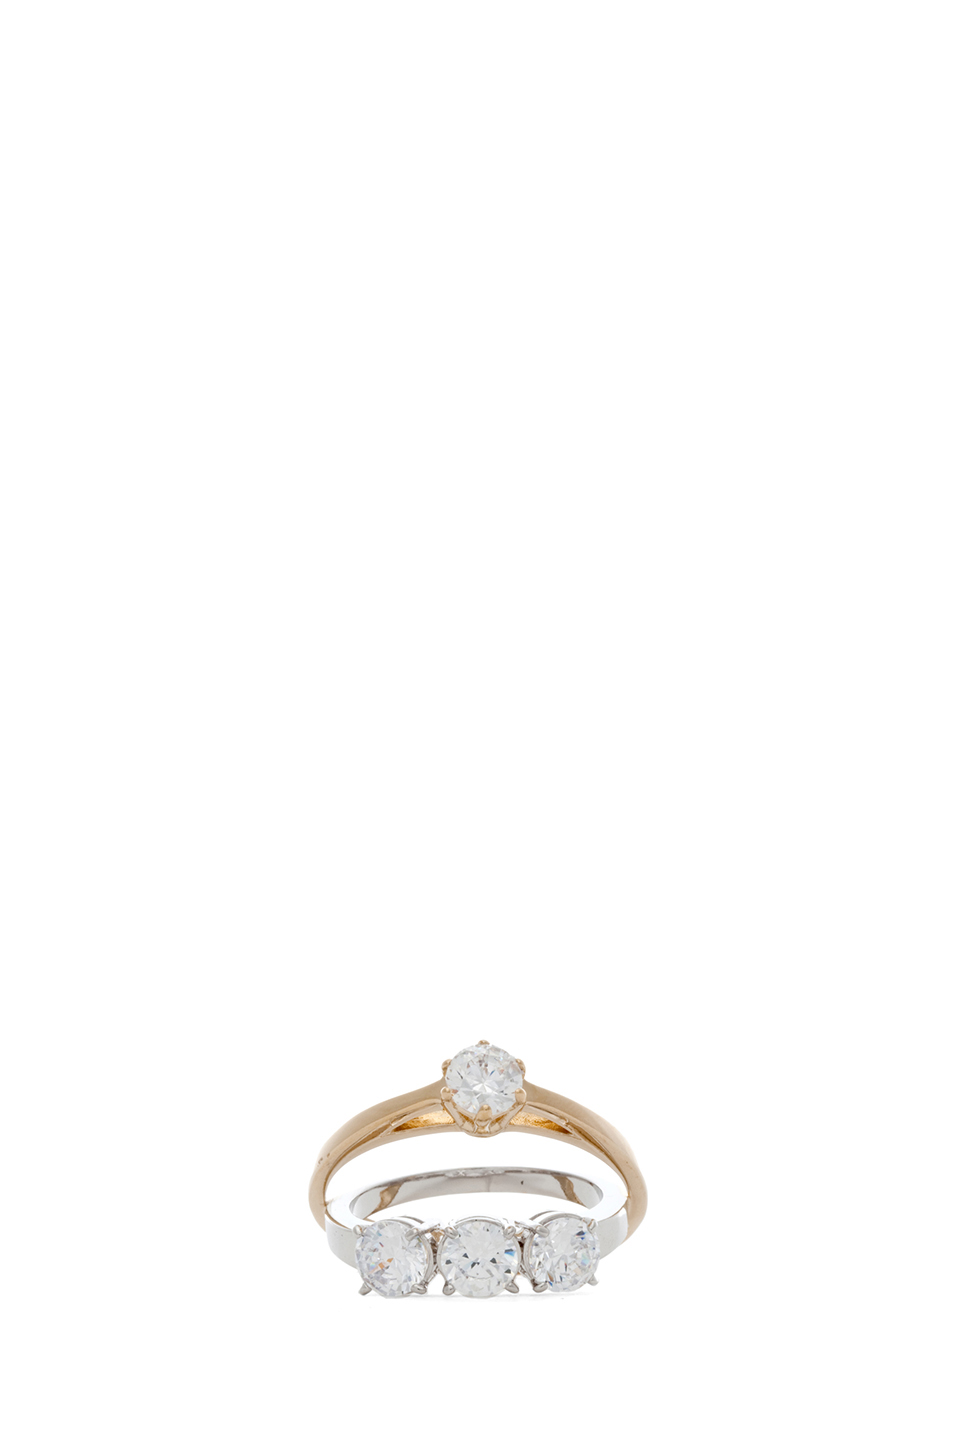 maison martin margiela ring in rhodium gold. Black Bedroom Furniture Sets. Home Design Ideas